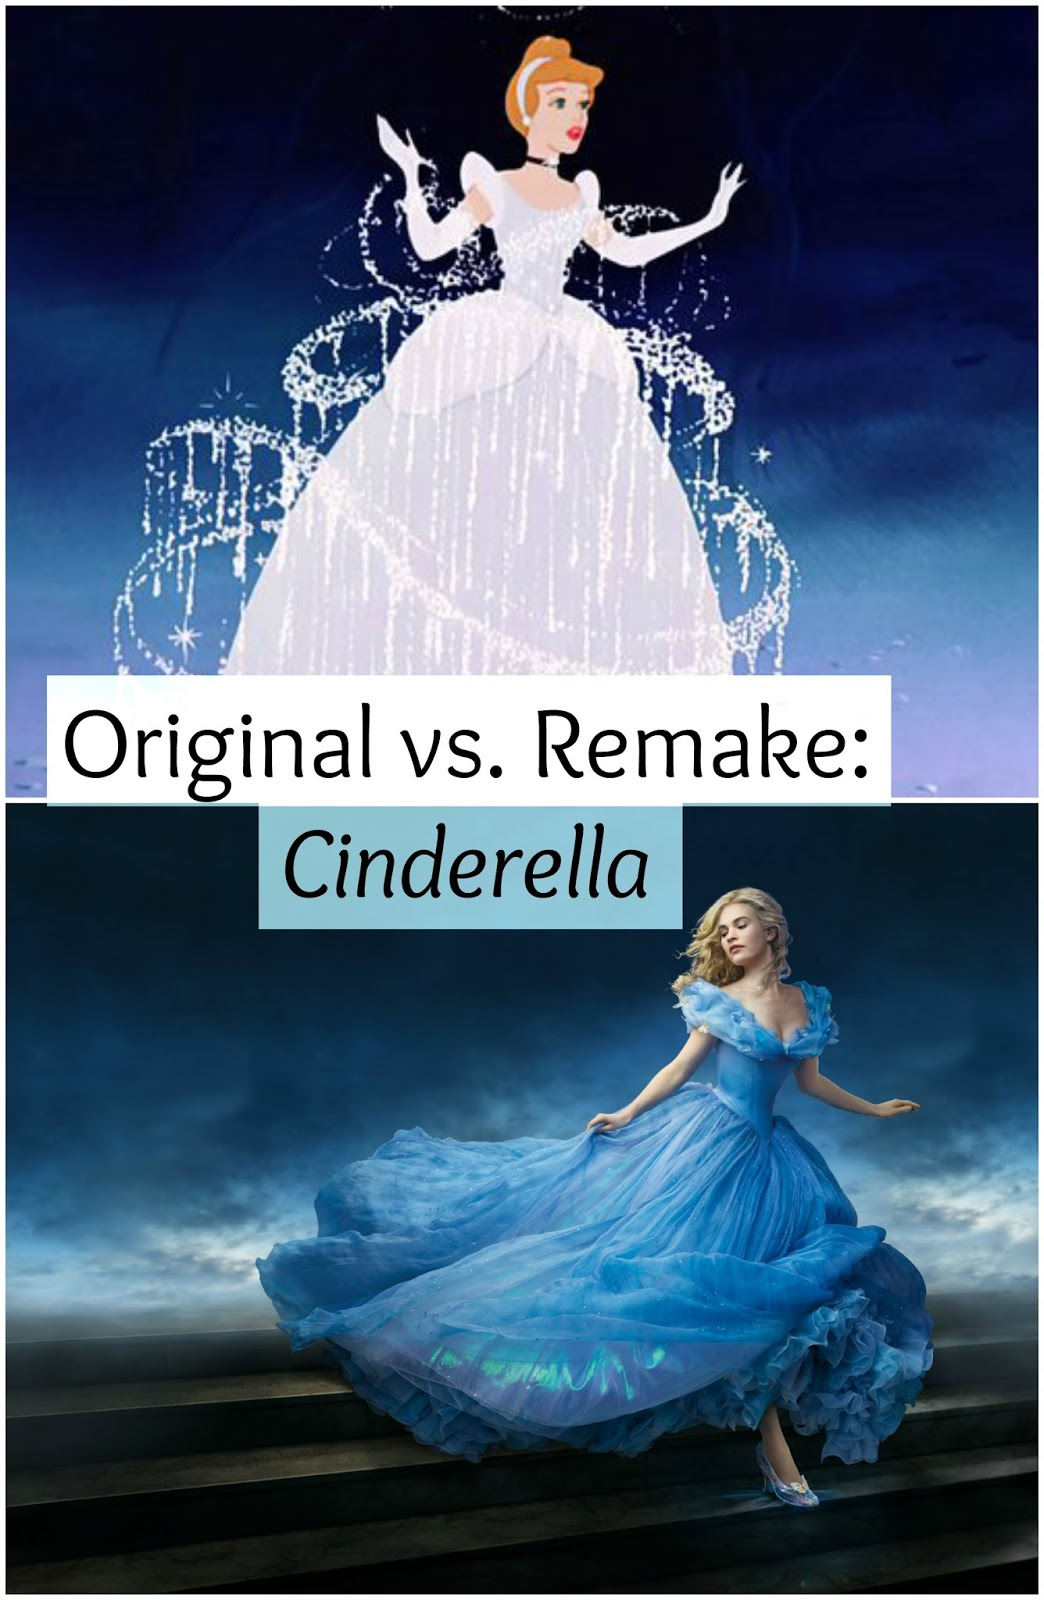 original cinderella vs the modern cinderella Watch video  cinderella, the beautiful and kind-hearted daughter, sees her world turn upside down when her beloved mother dies, and her pained father remarries another woman, the wicked lady tremaine, who has two equally cruel daughters, the jealous anastasia and drizella.